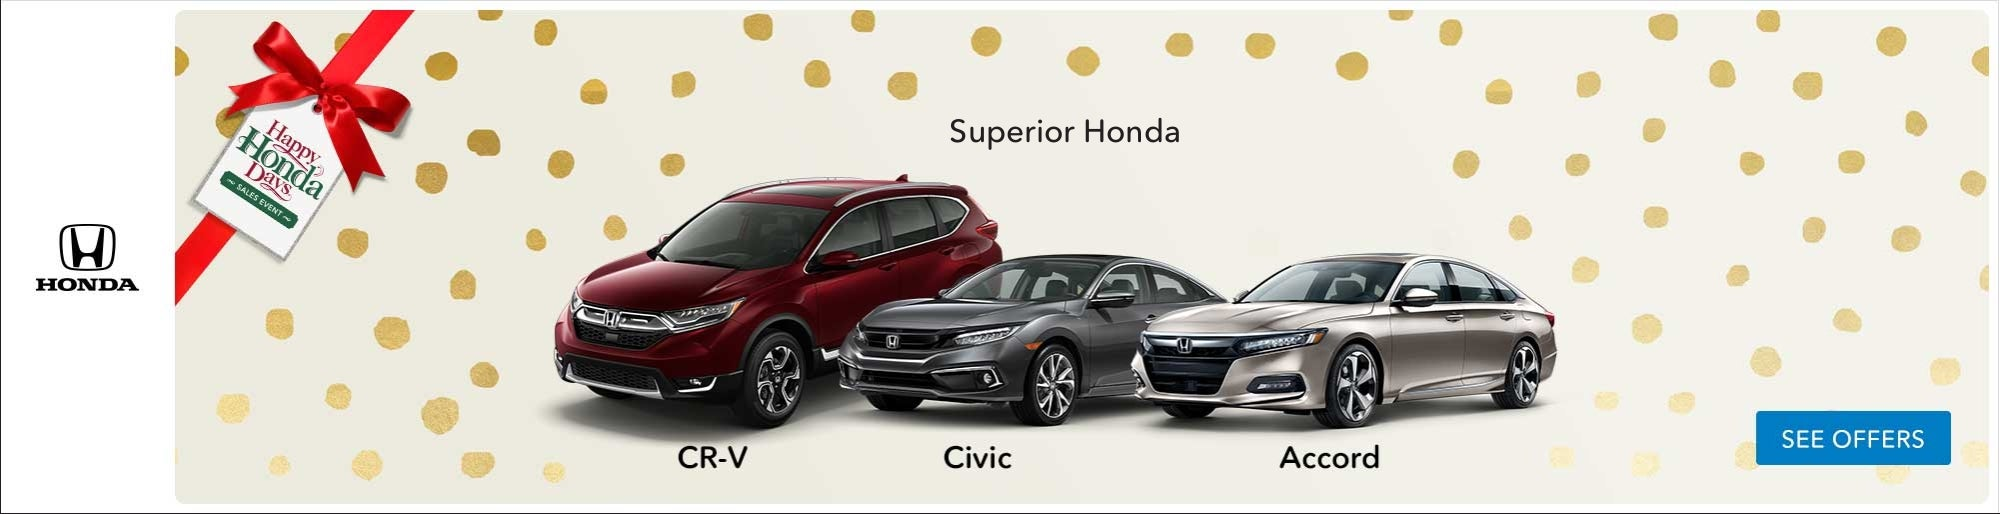 Honda Dealership Charleston Sc >> Orangeburg Honda Dealer In Orangeburg Sc Savannah Columbia